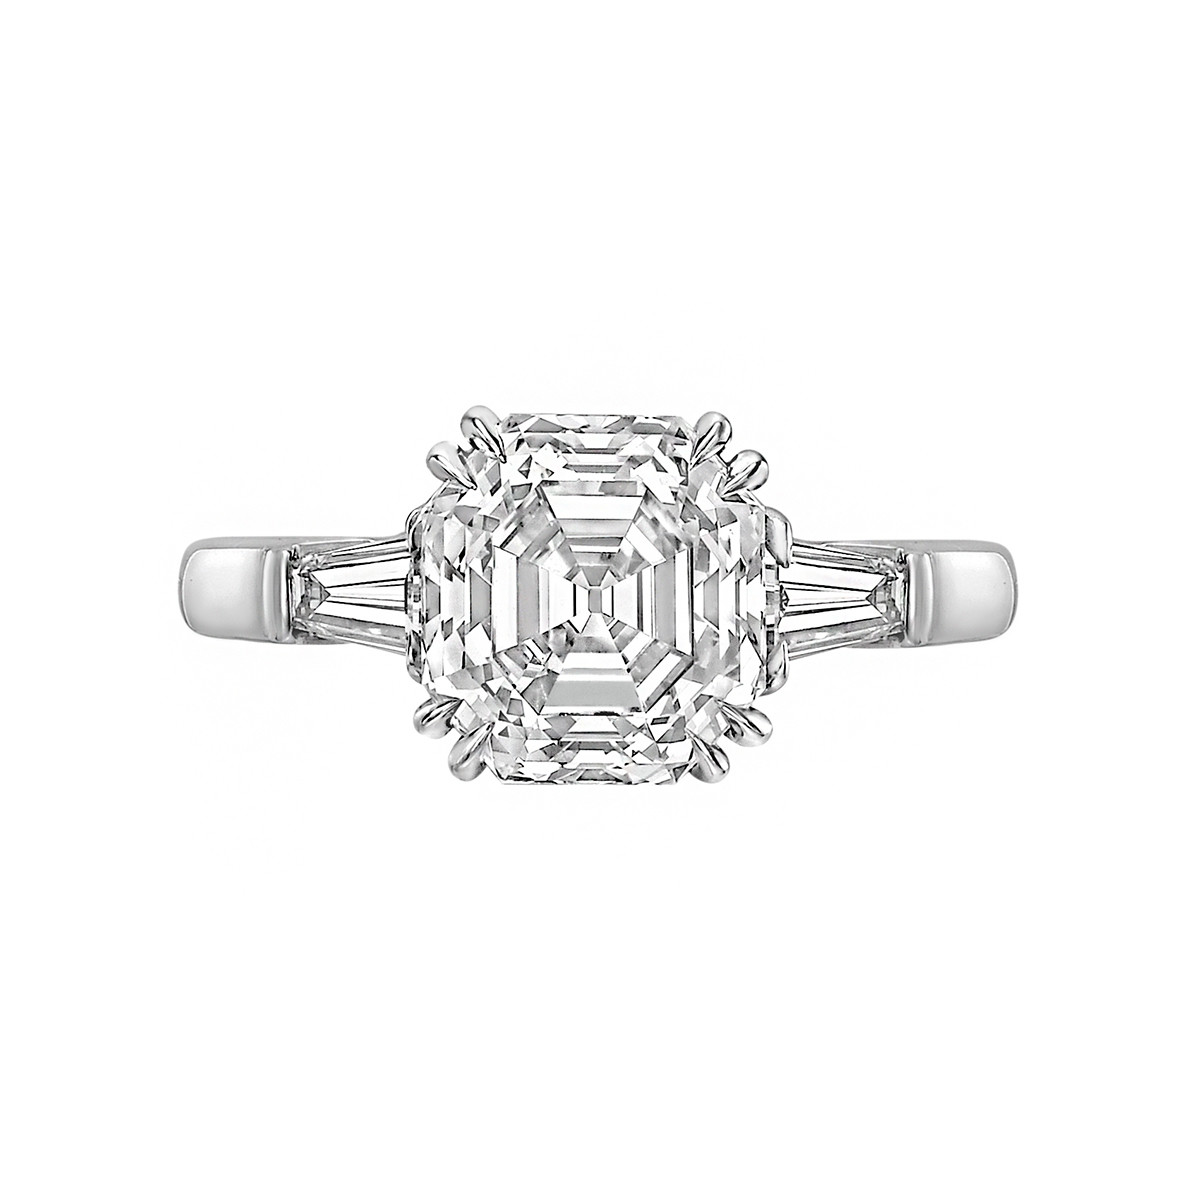 3.09ct Asscher-Cut Diamond Ring (G/VVS2)